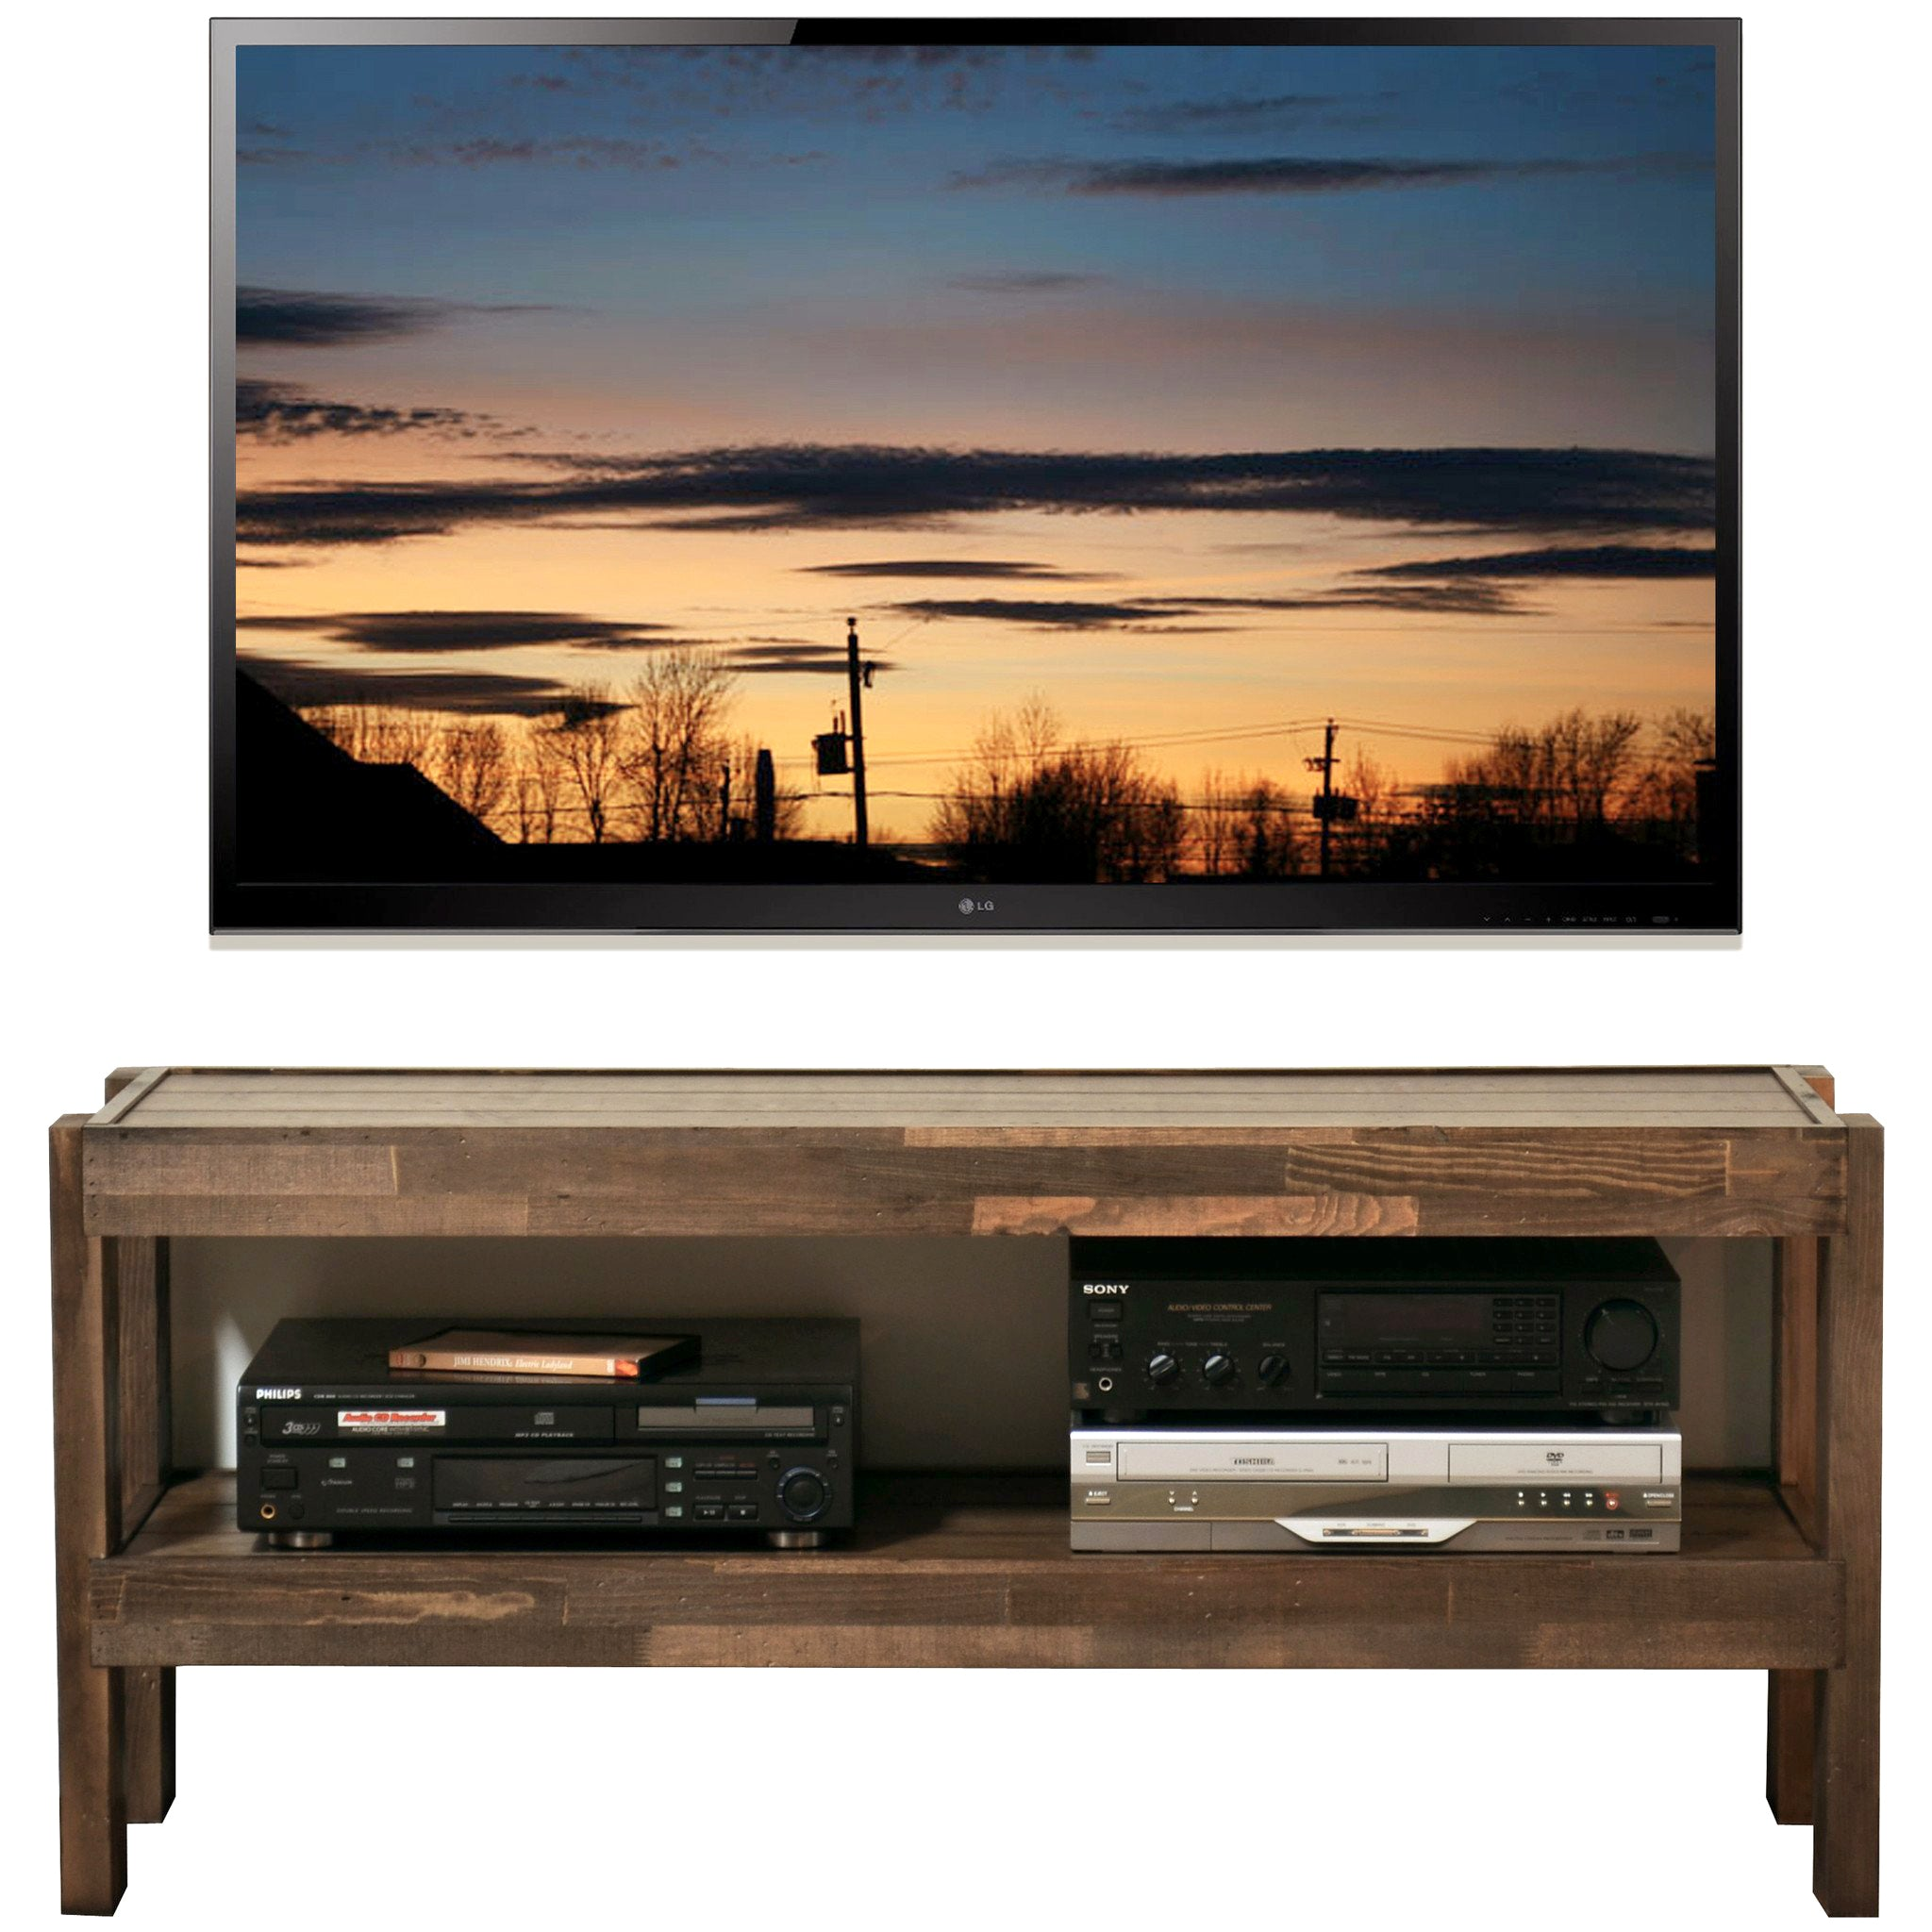 graffiti media boston asc s direction phyl furniture mode list show modern by name sort all tv entertainment pedestal stands bernie stand